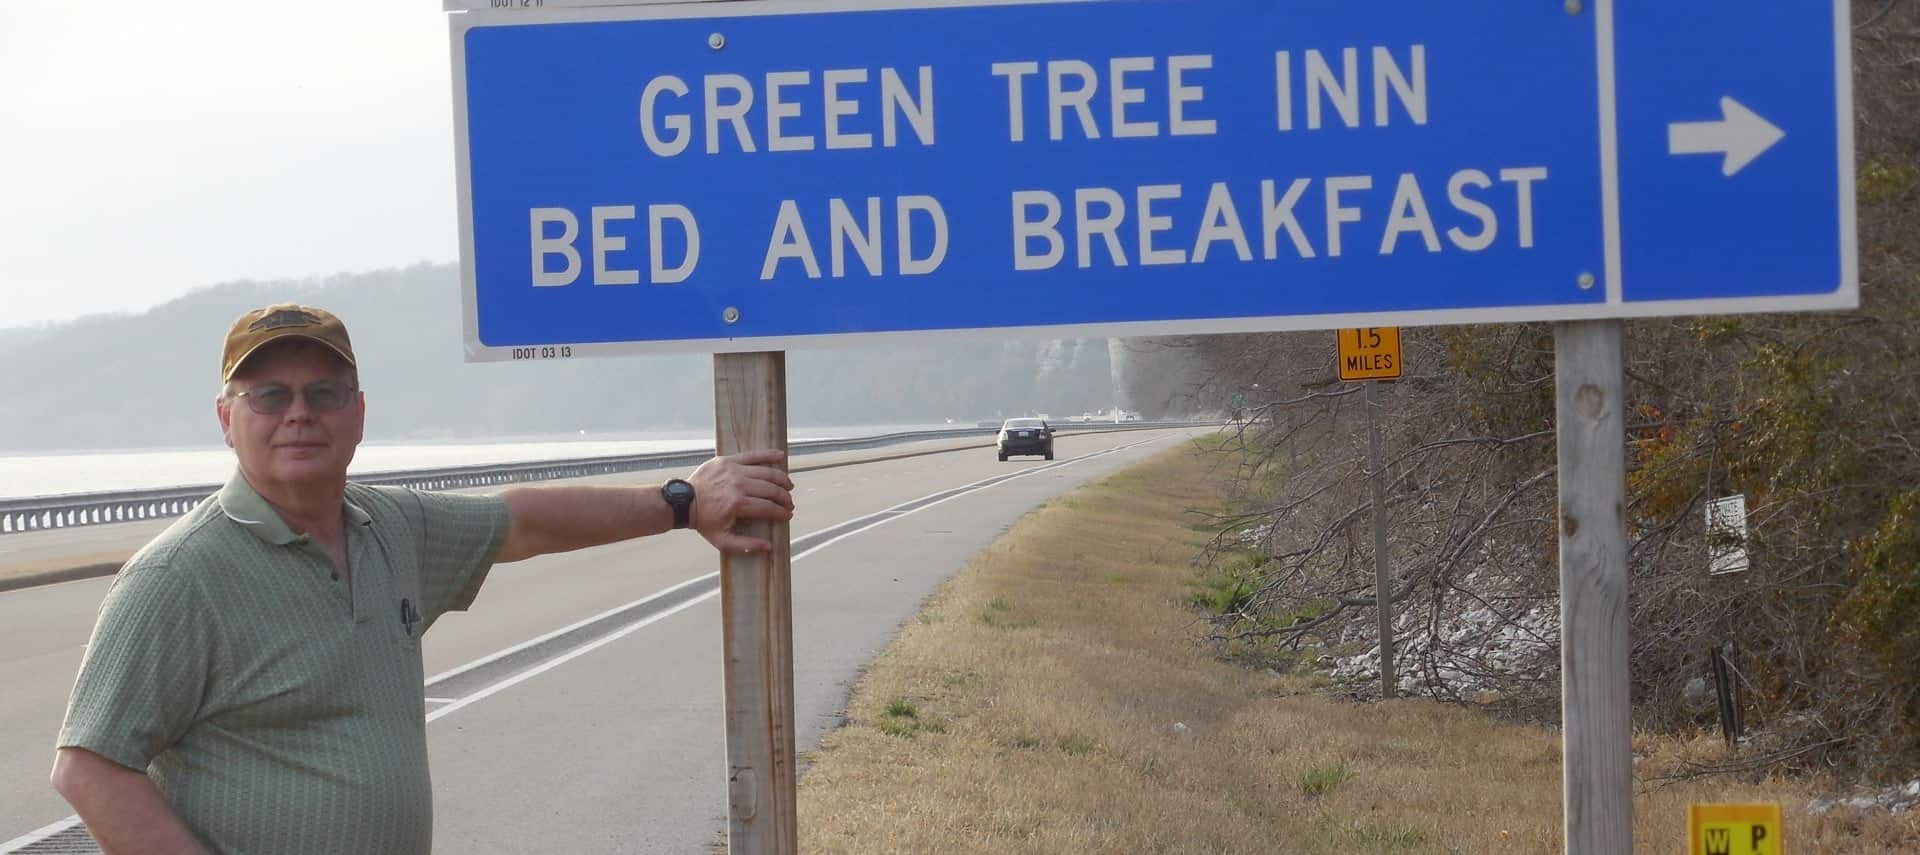 Person standing next to blue highway sign with Green Tree Inn Bed and Breakfast written on it